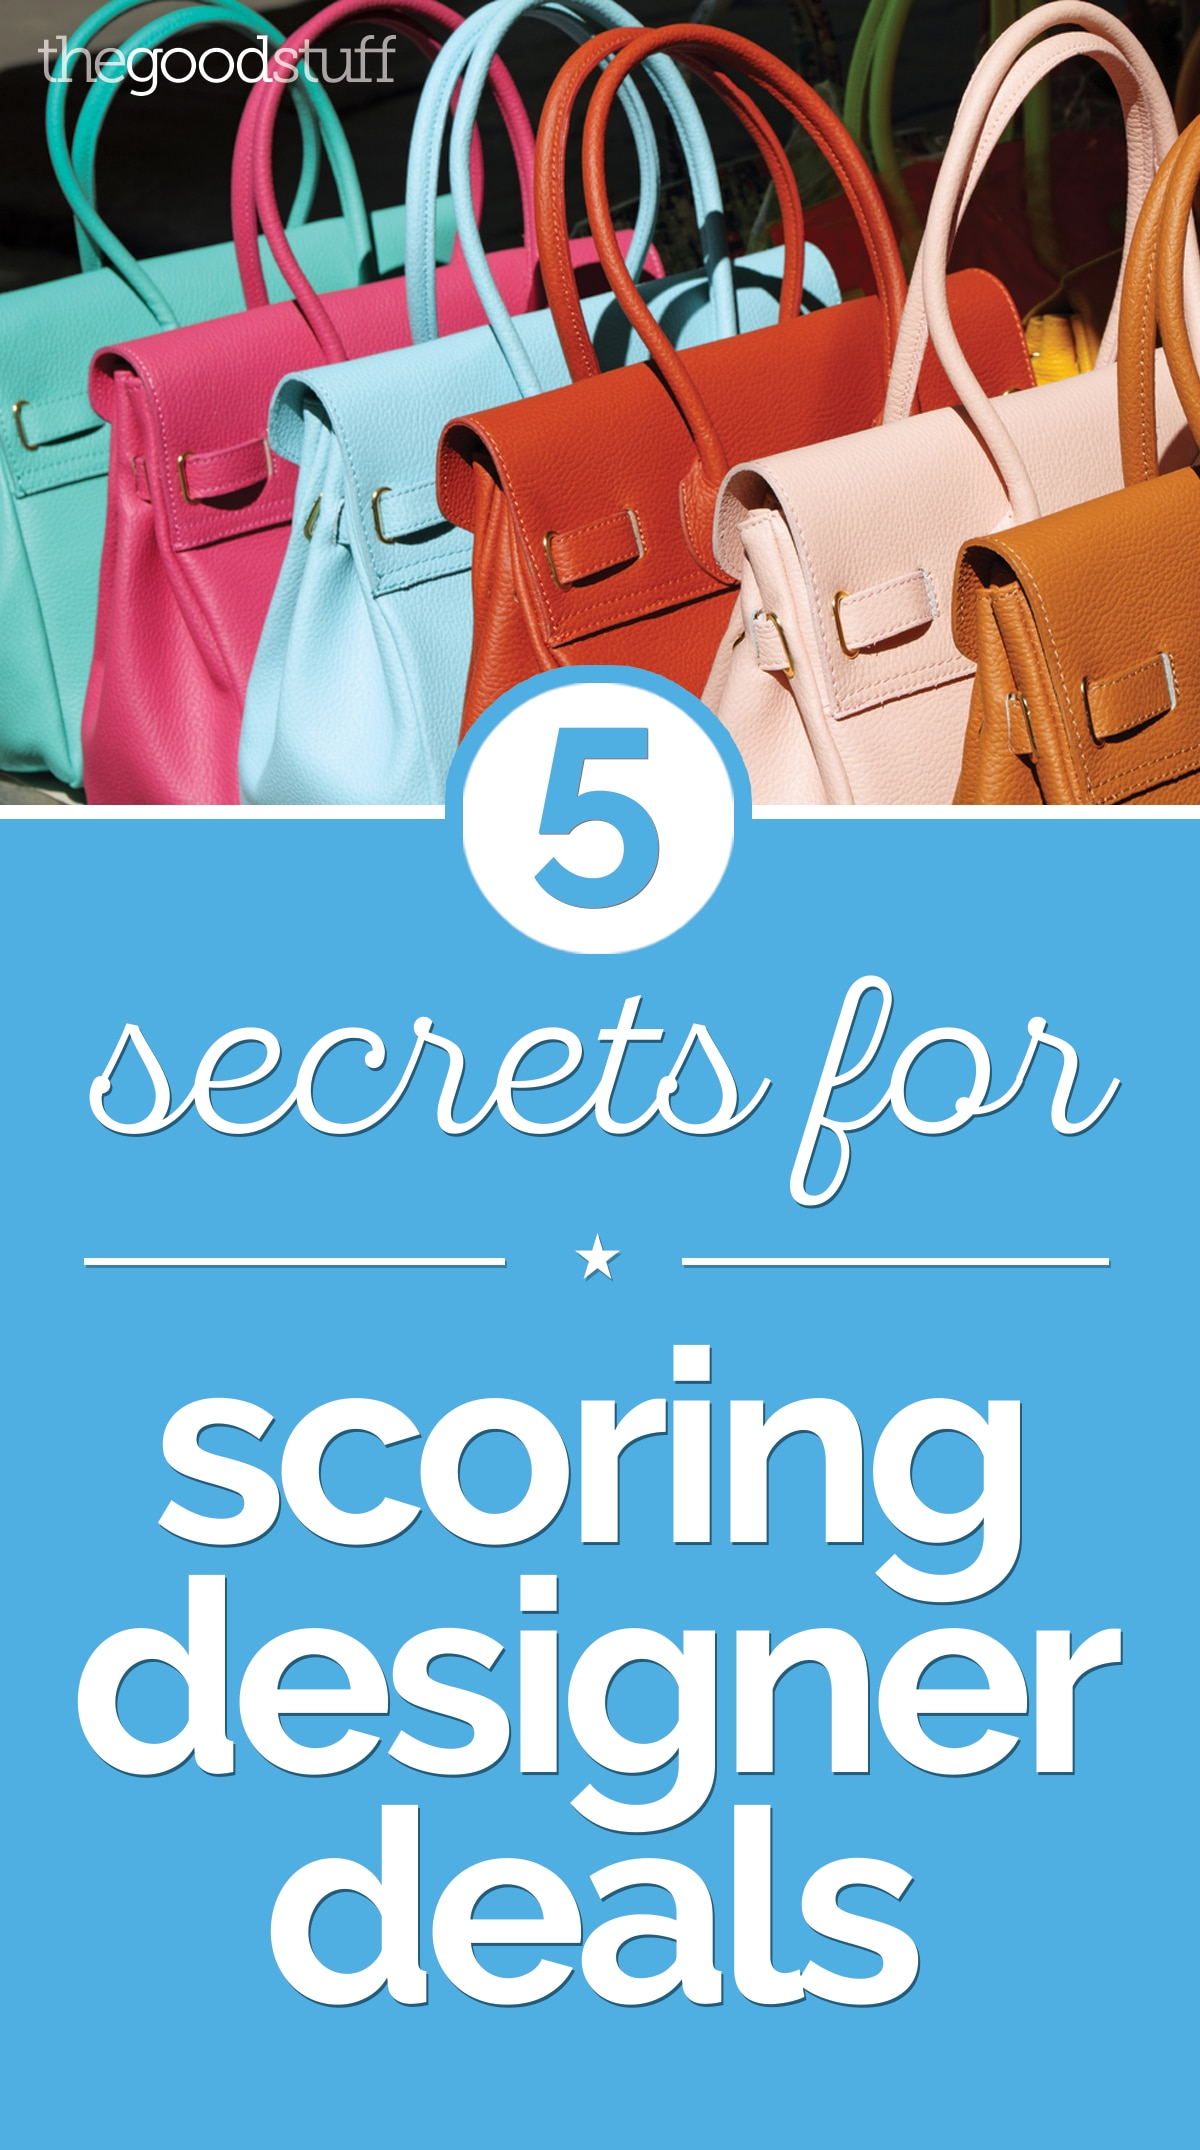 5 Secrets for Scoring Designer Deals | thegoodstuff